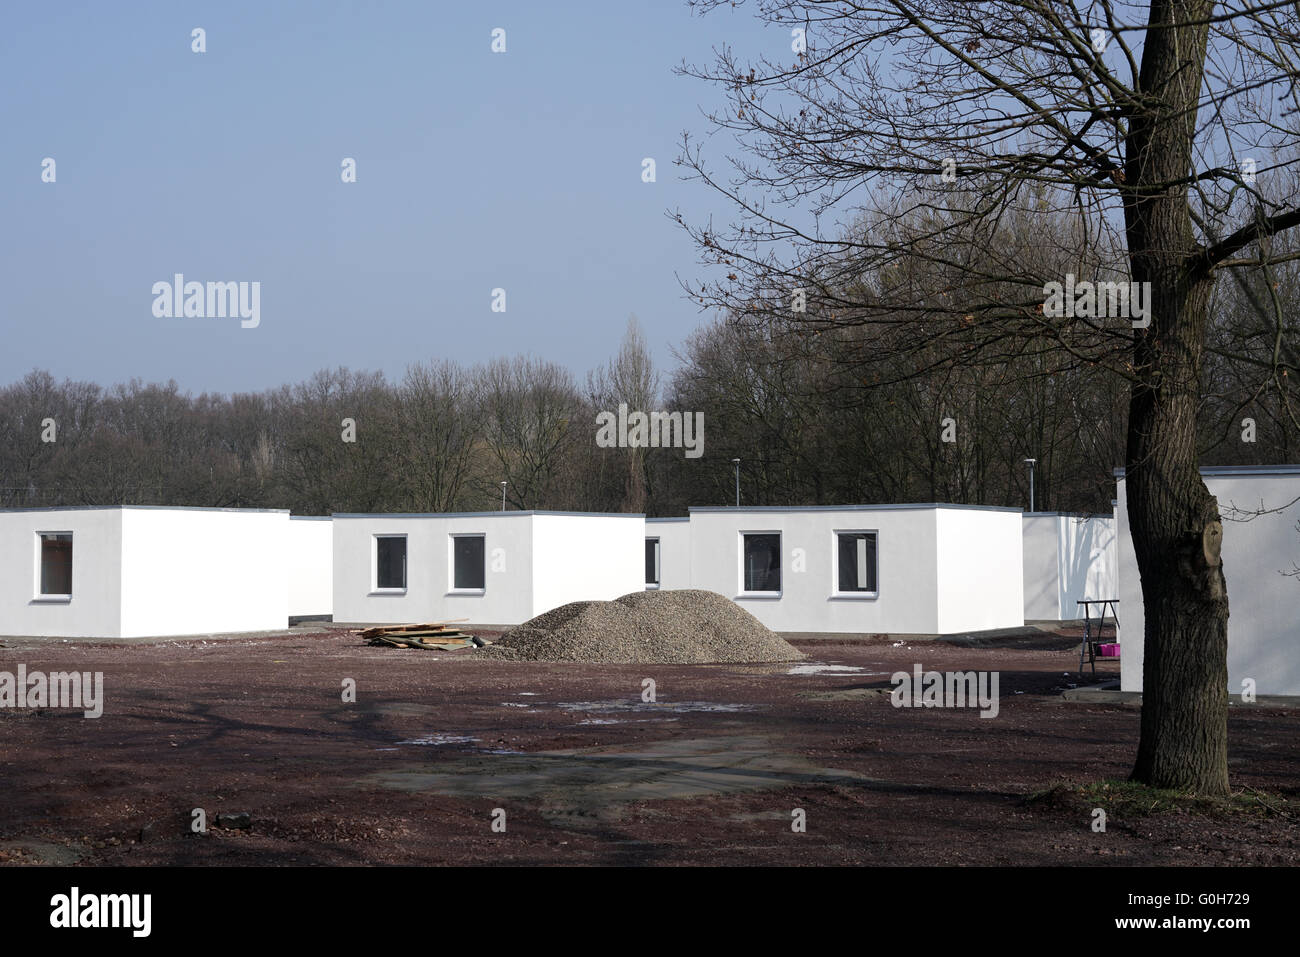 newly constructed refugee shelters on the outskirts of Magdeburg in Germany - Stock Image